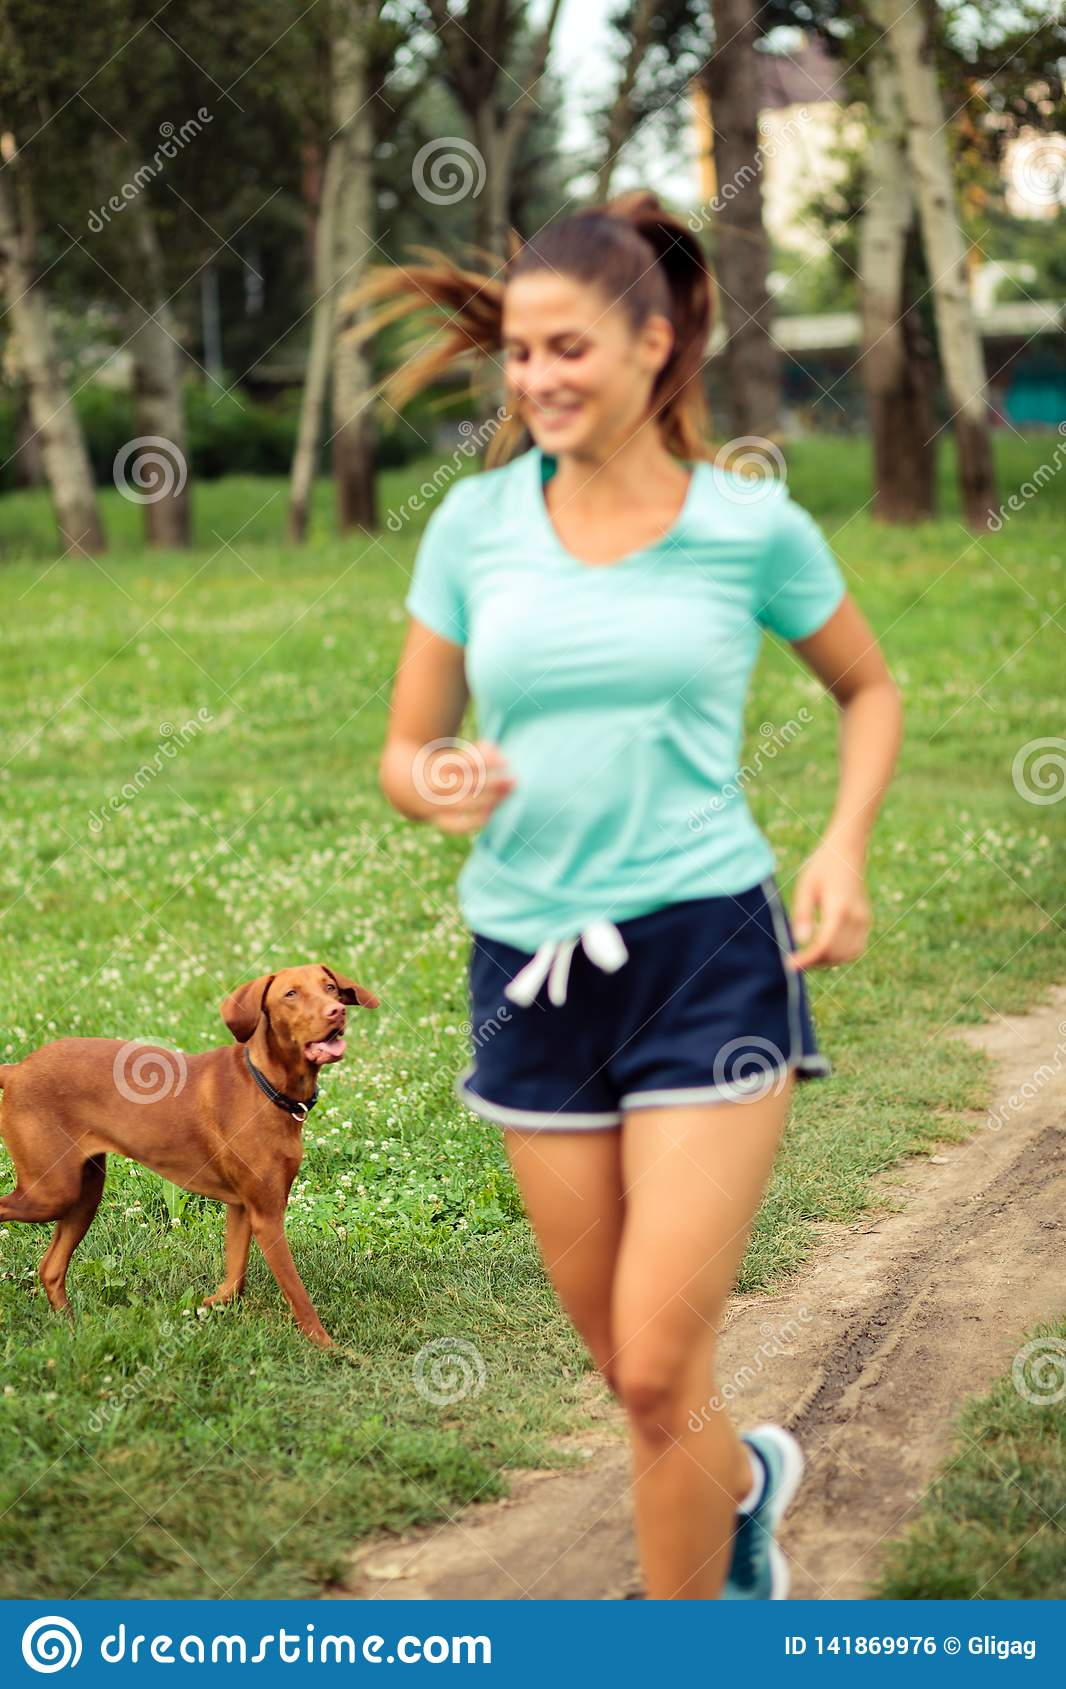 Dog following young woman while she is running in a park